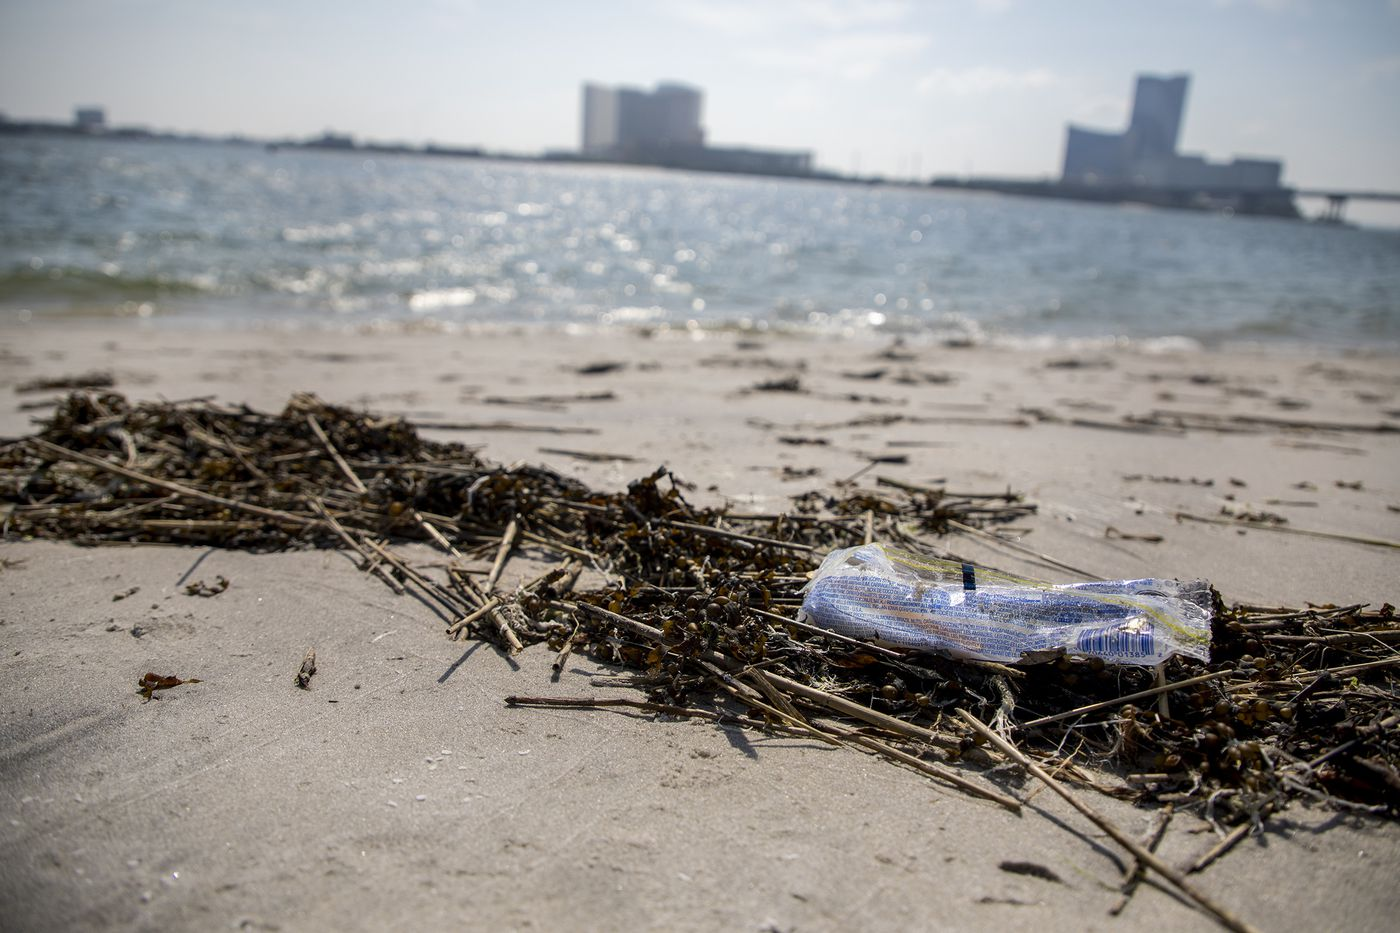 A piece of trash on the beach in Brigantine, N.J., on Wednesday, July 17, 2019. Locals are upset about how the beach is treated and clean up trash by bringing trash bags.